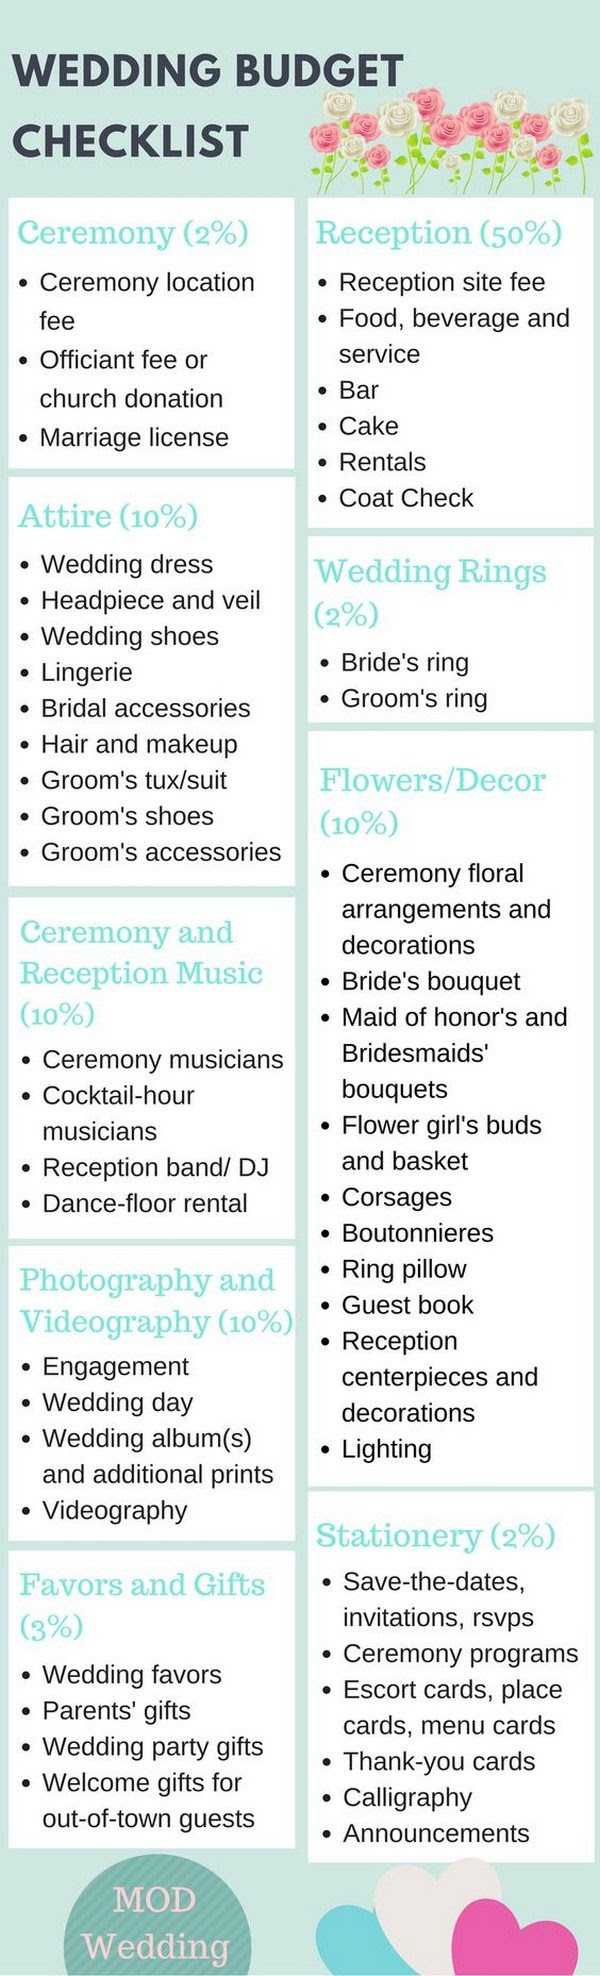 10 Useful Wedding Planning Infographics to Give Some Ideas and Tips - Oh Best Day Ever